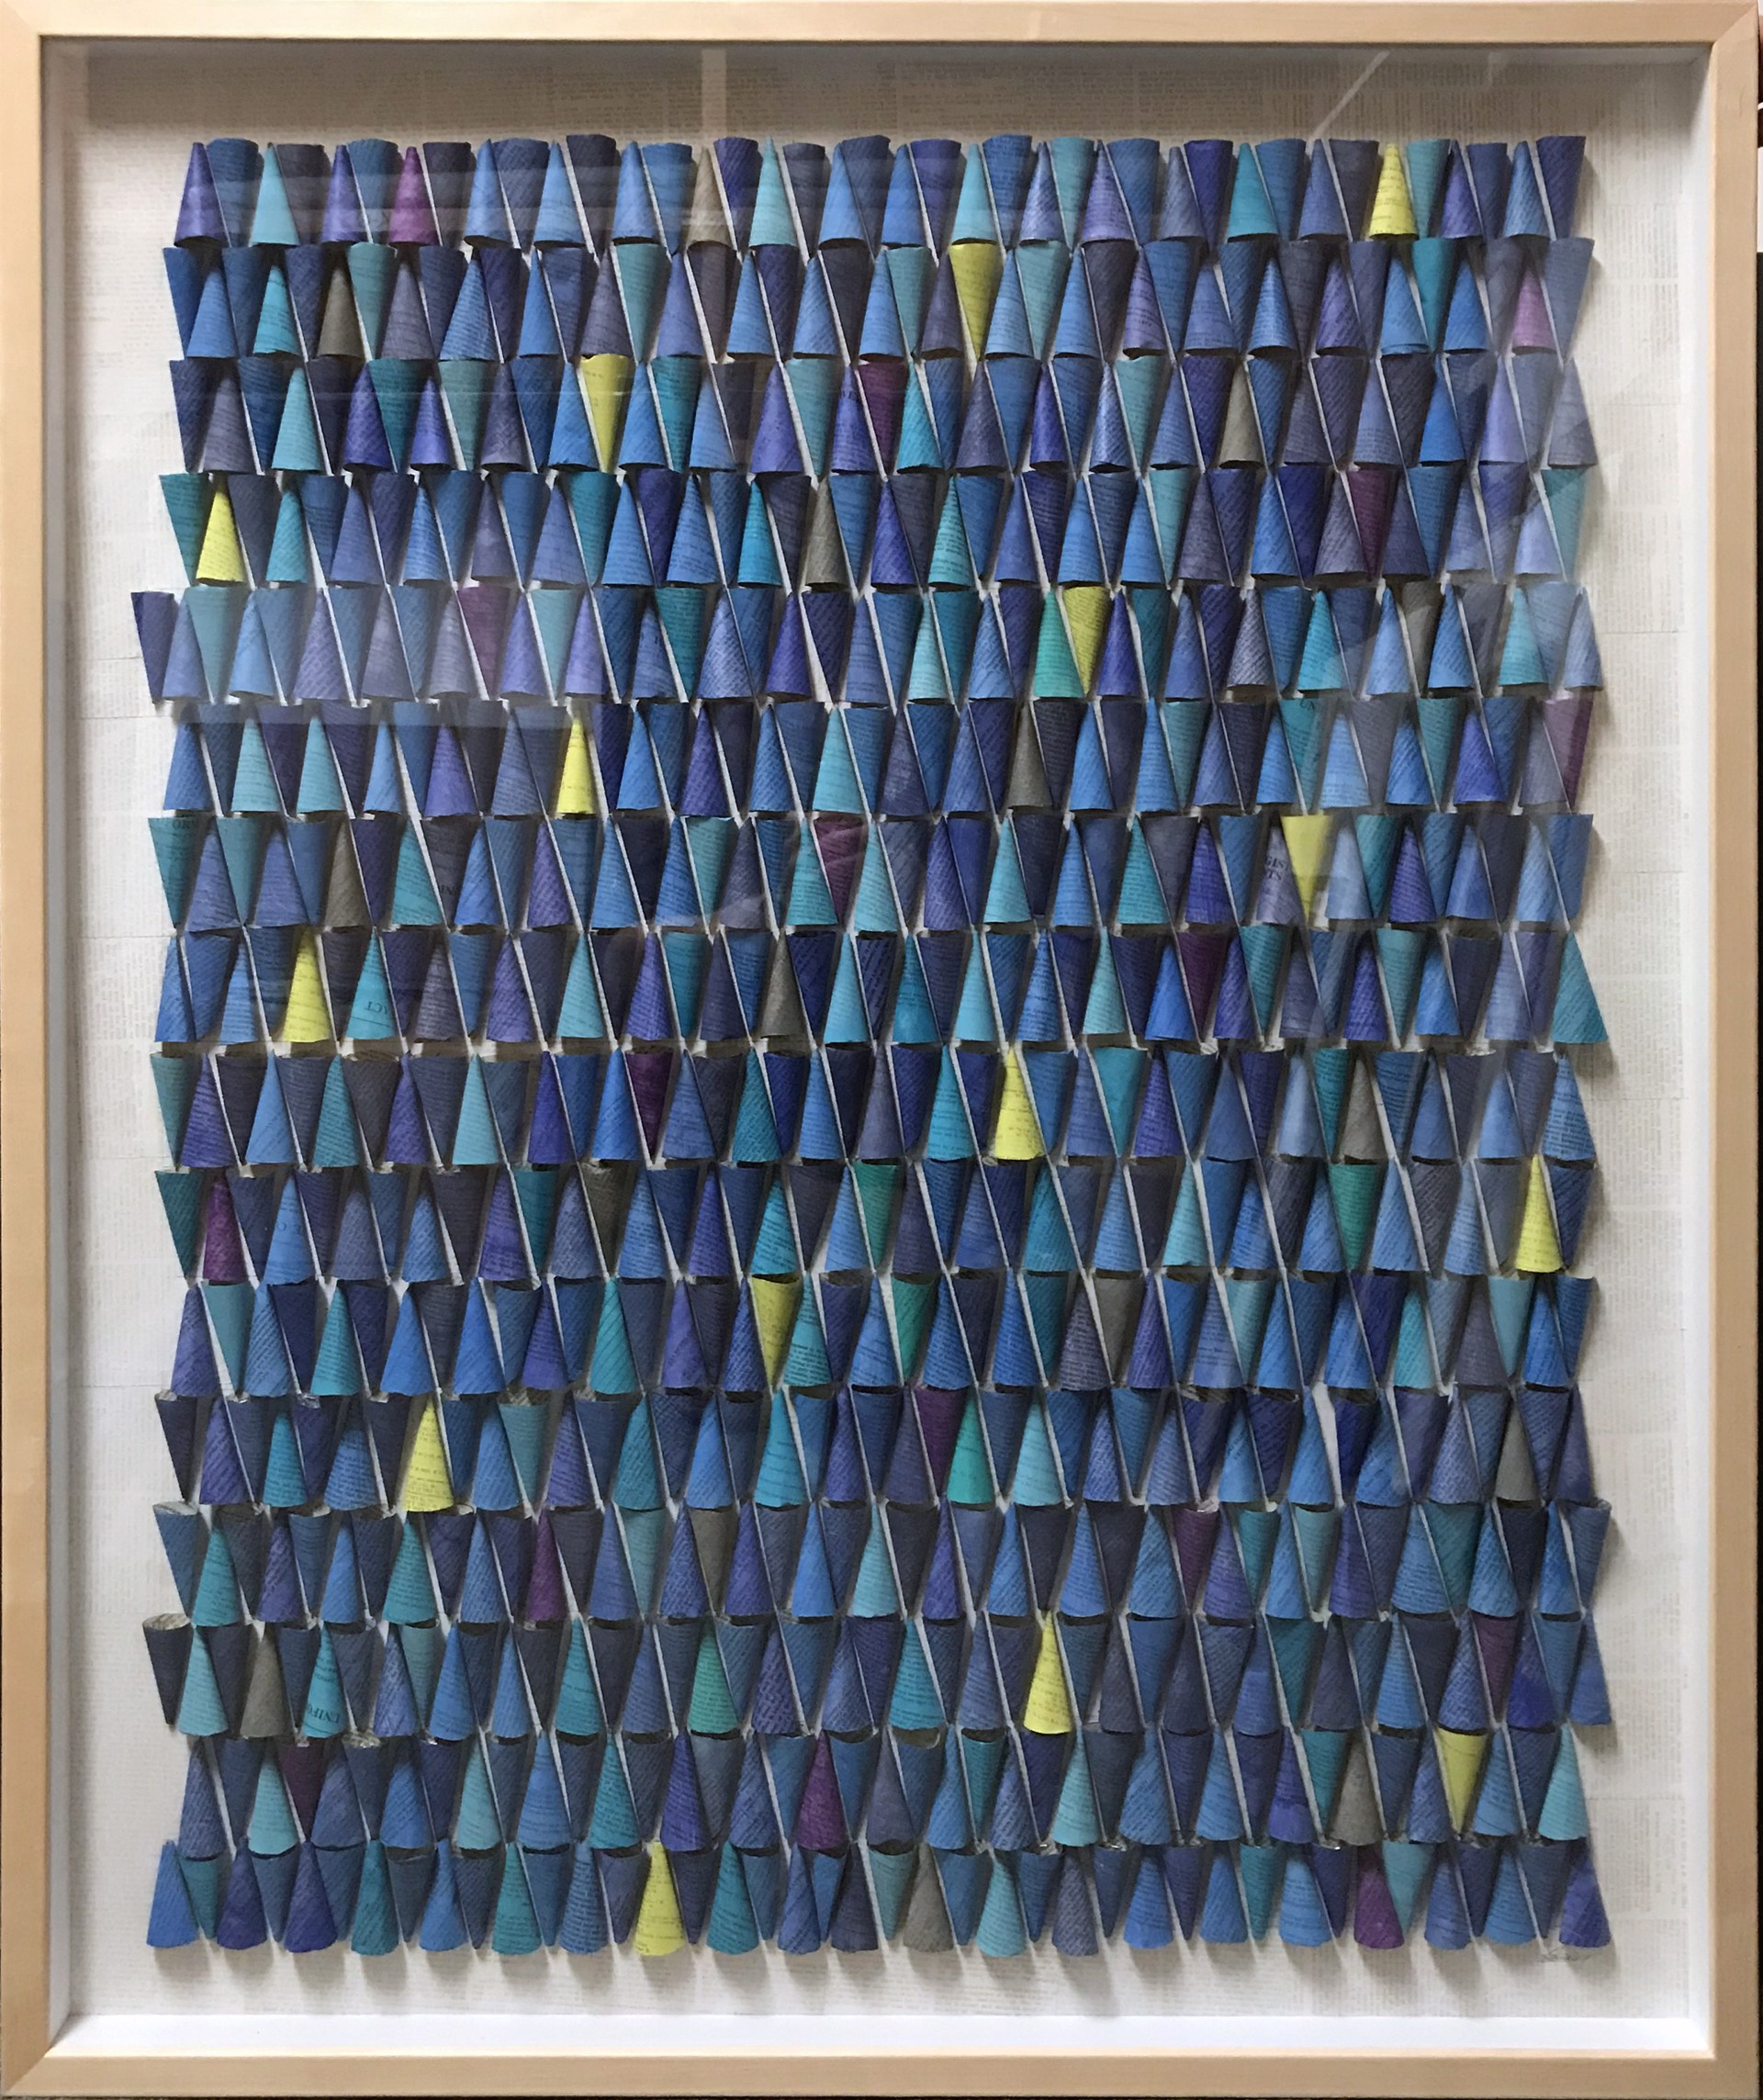 Cone Blanket II Blue by Philip Durst